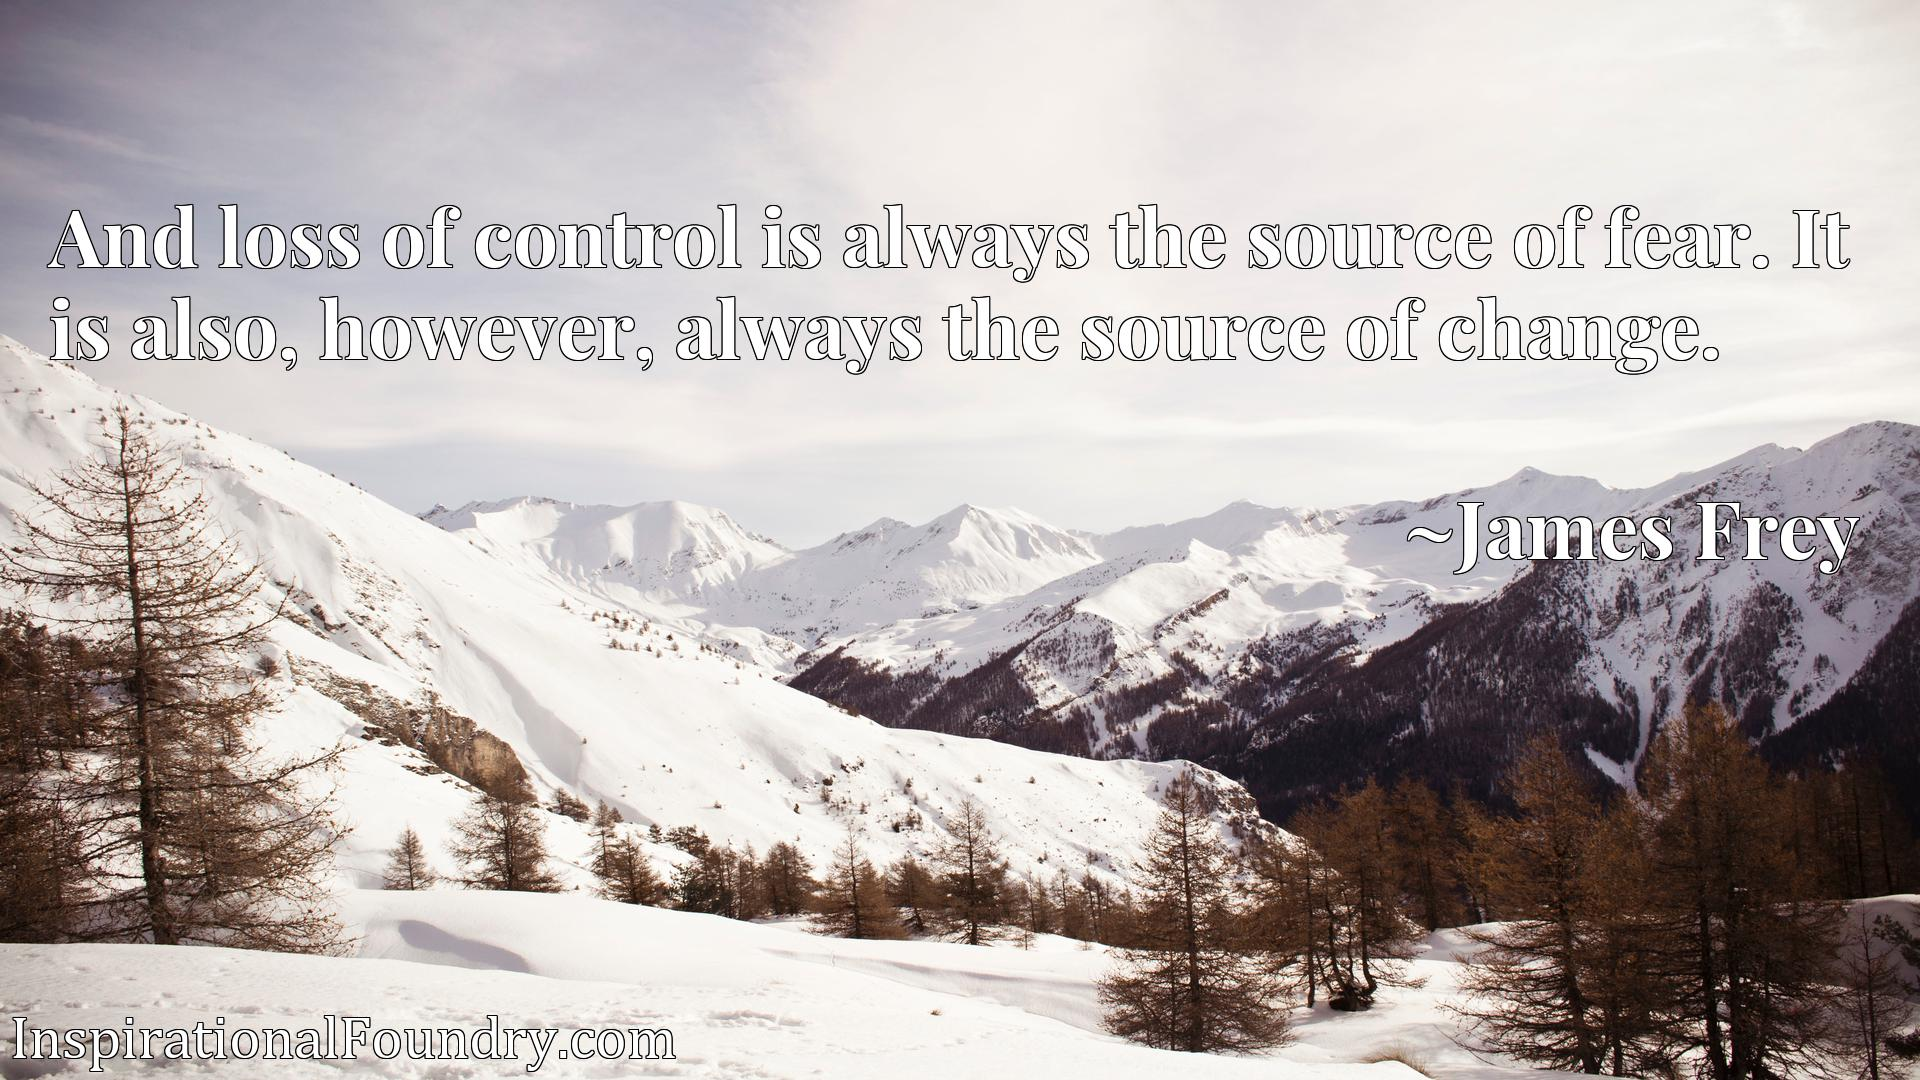 And loss of control is always the source of fear. It is also, however, always the source of change.